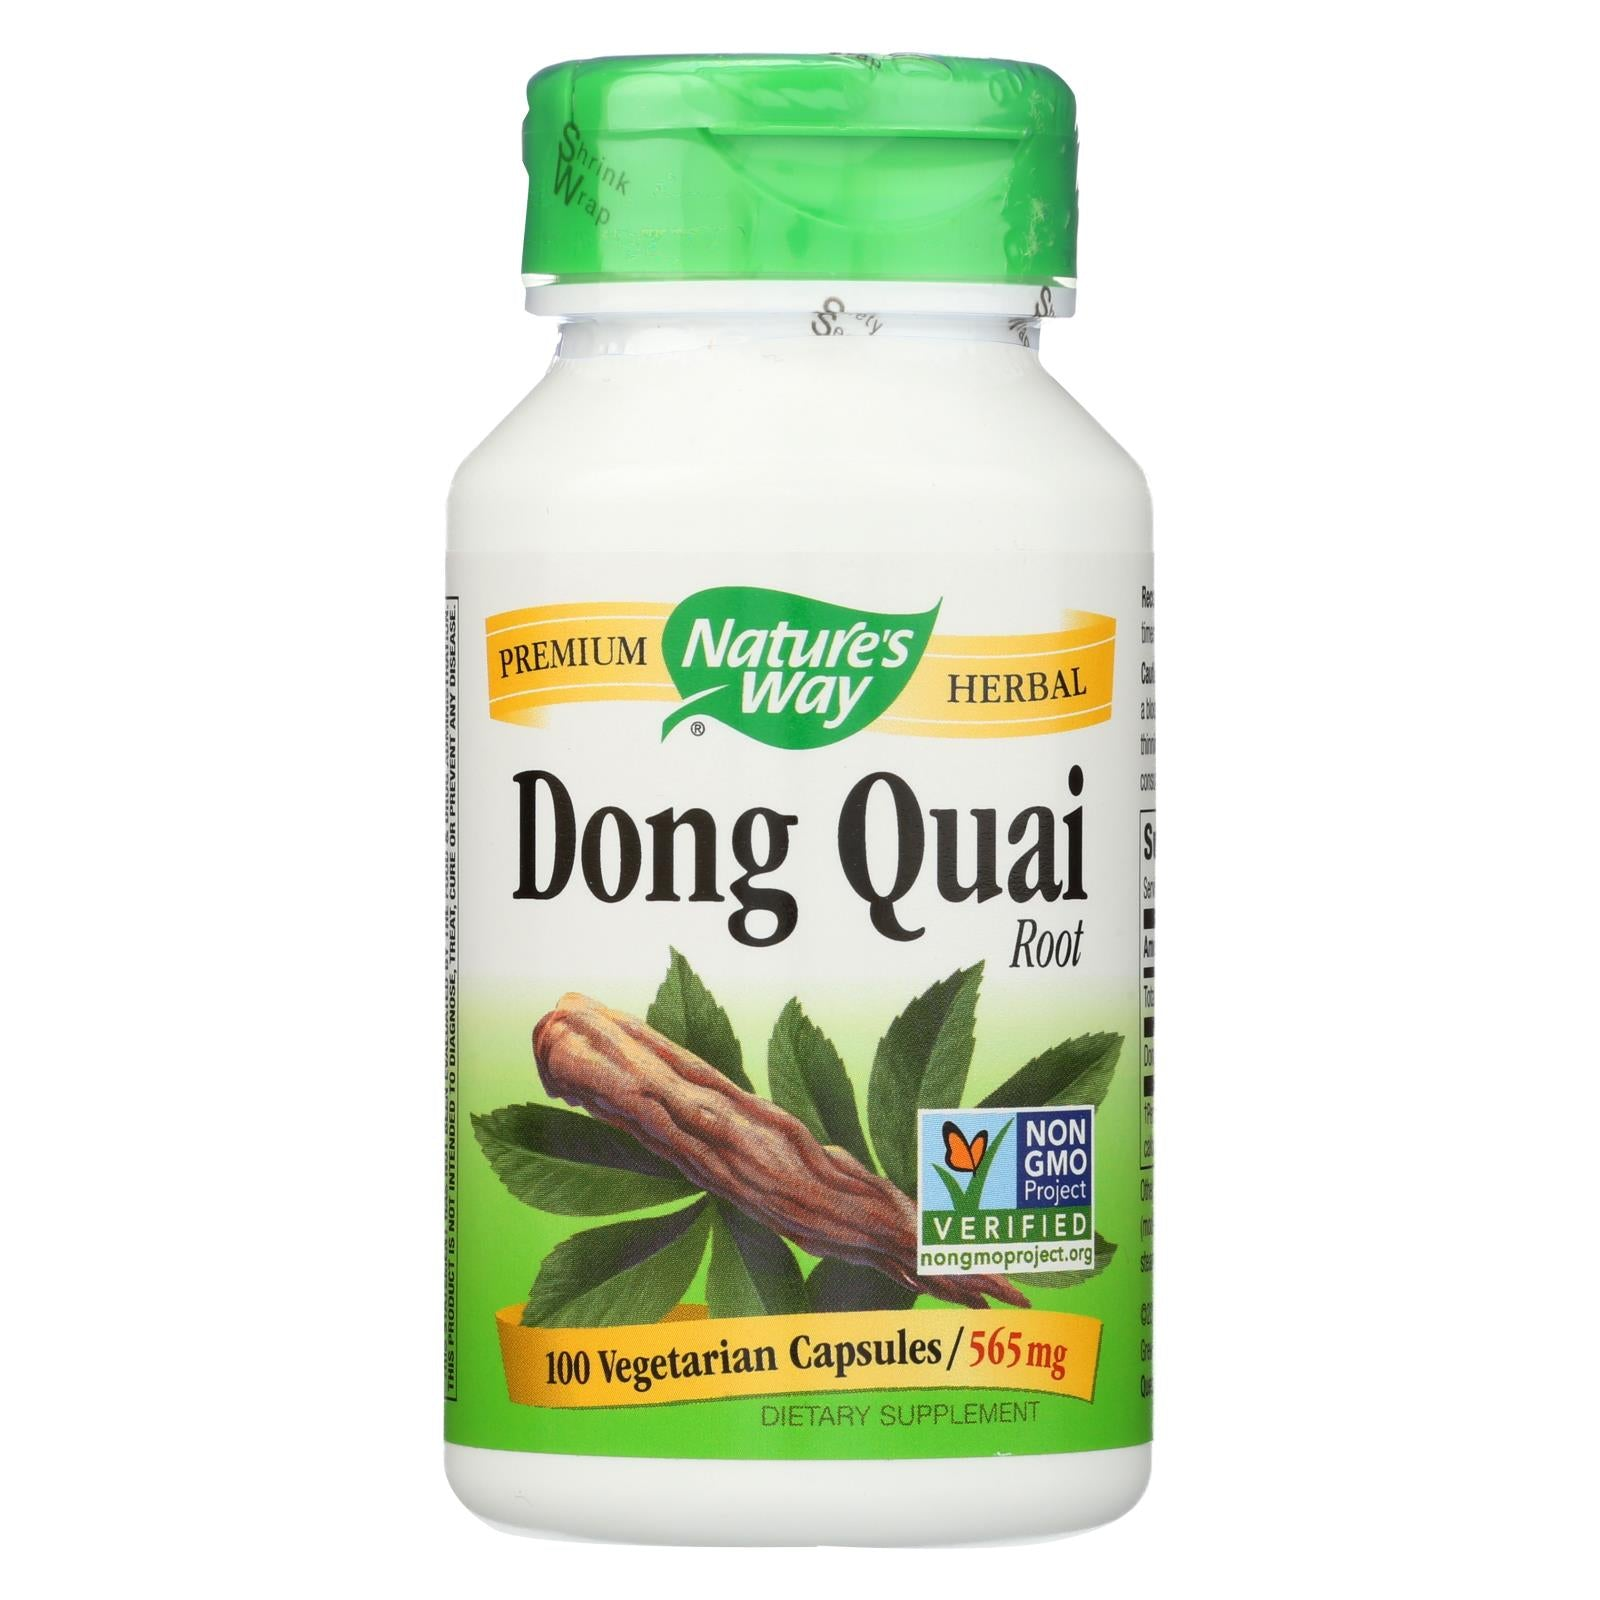 Nature's Way Dong Quai Root - 100 Capsules HG0564807